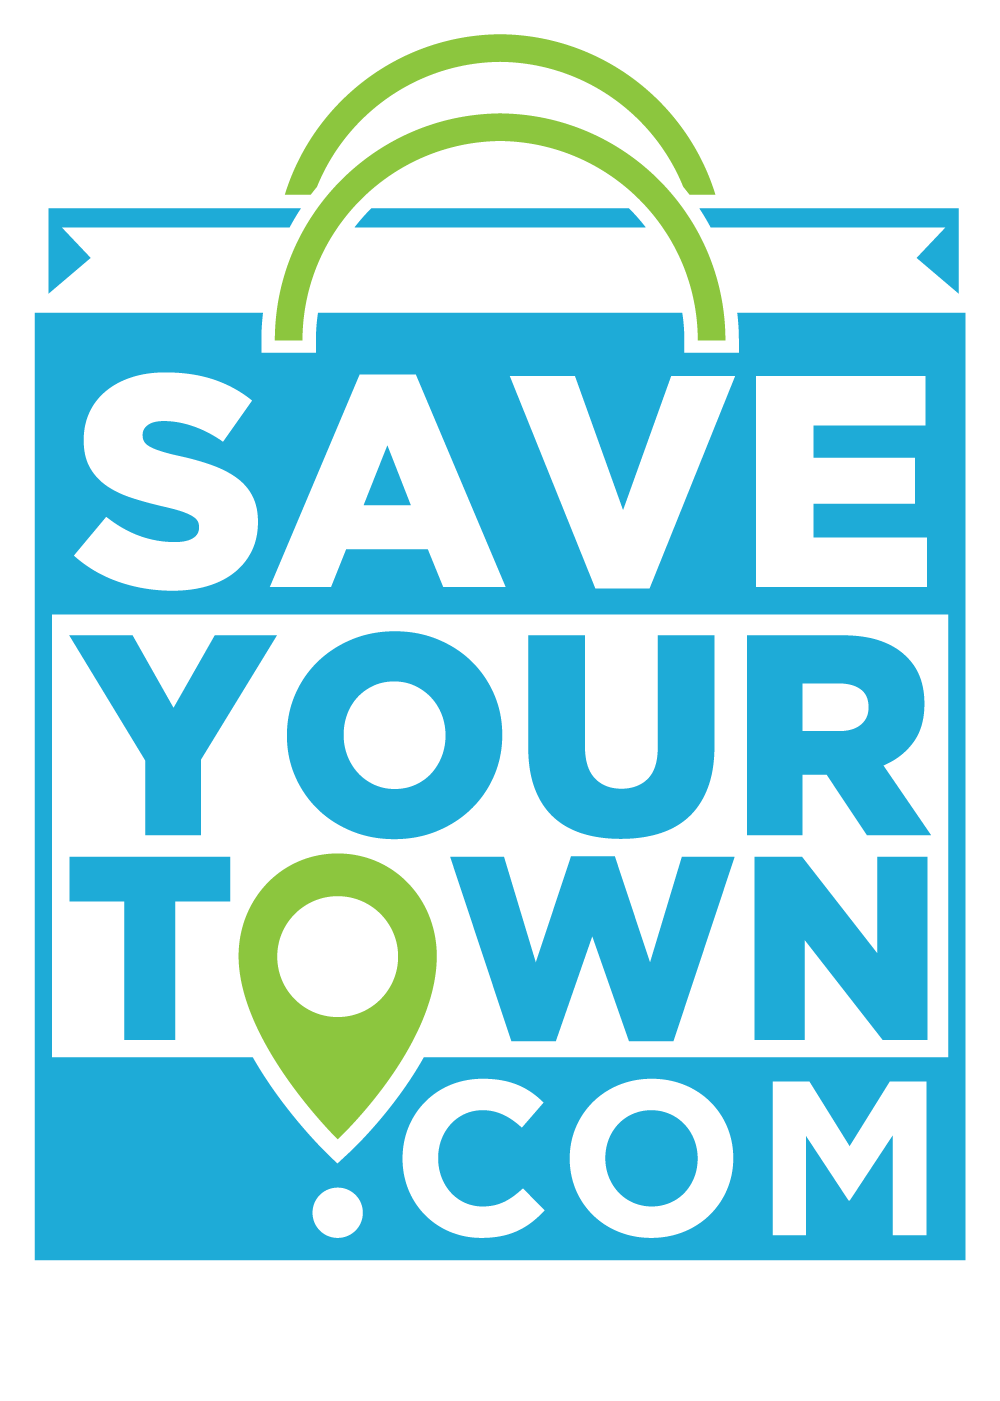 Save Your Town